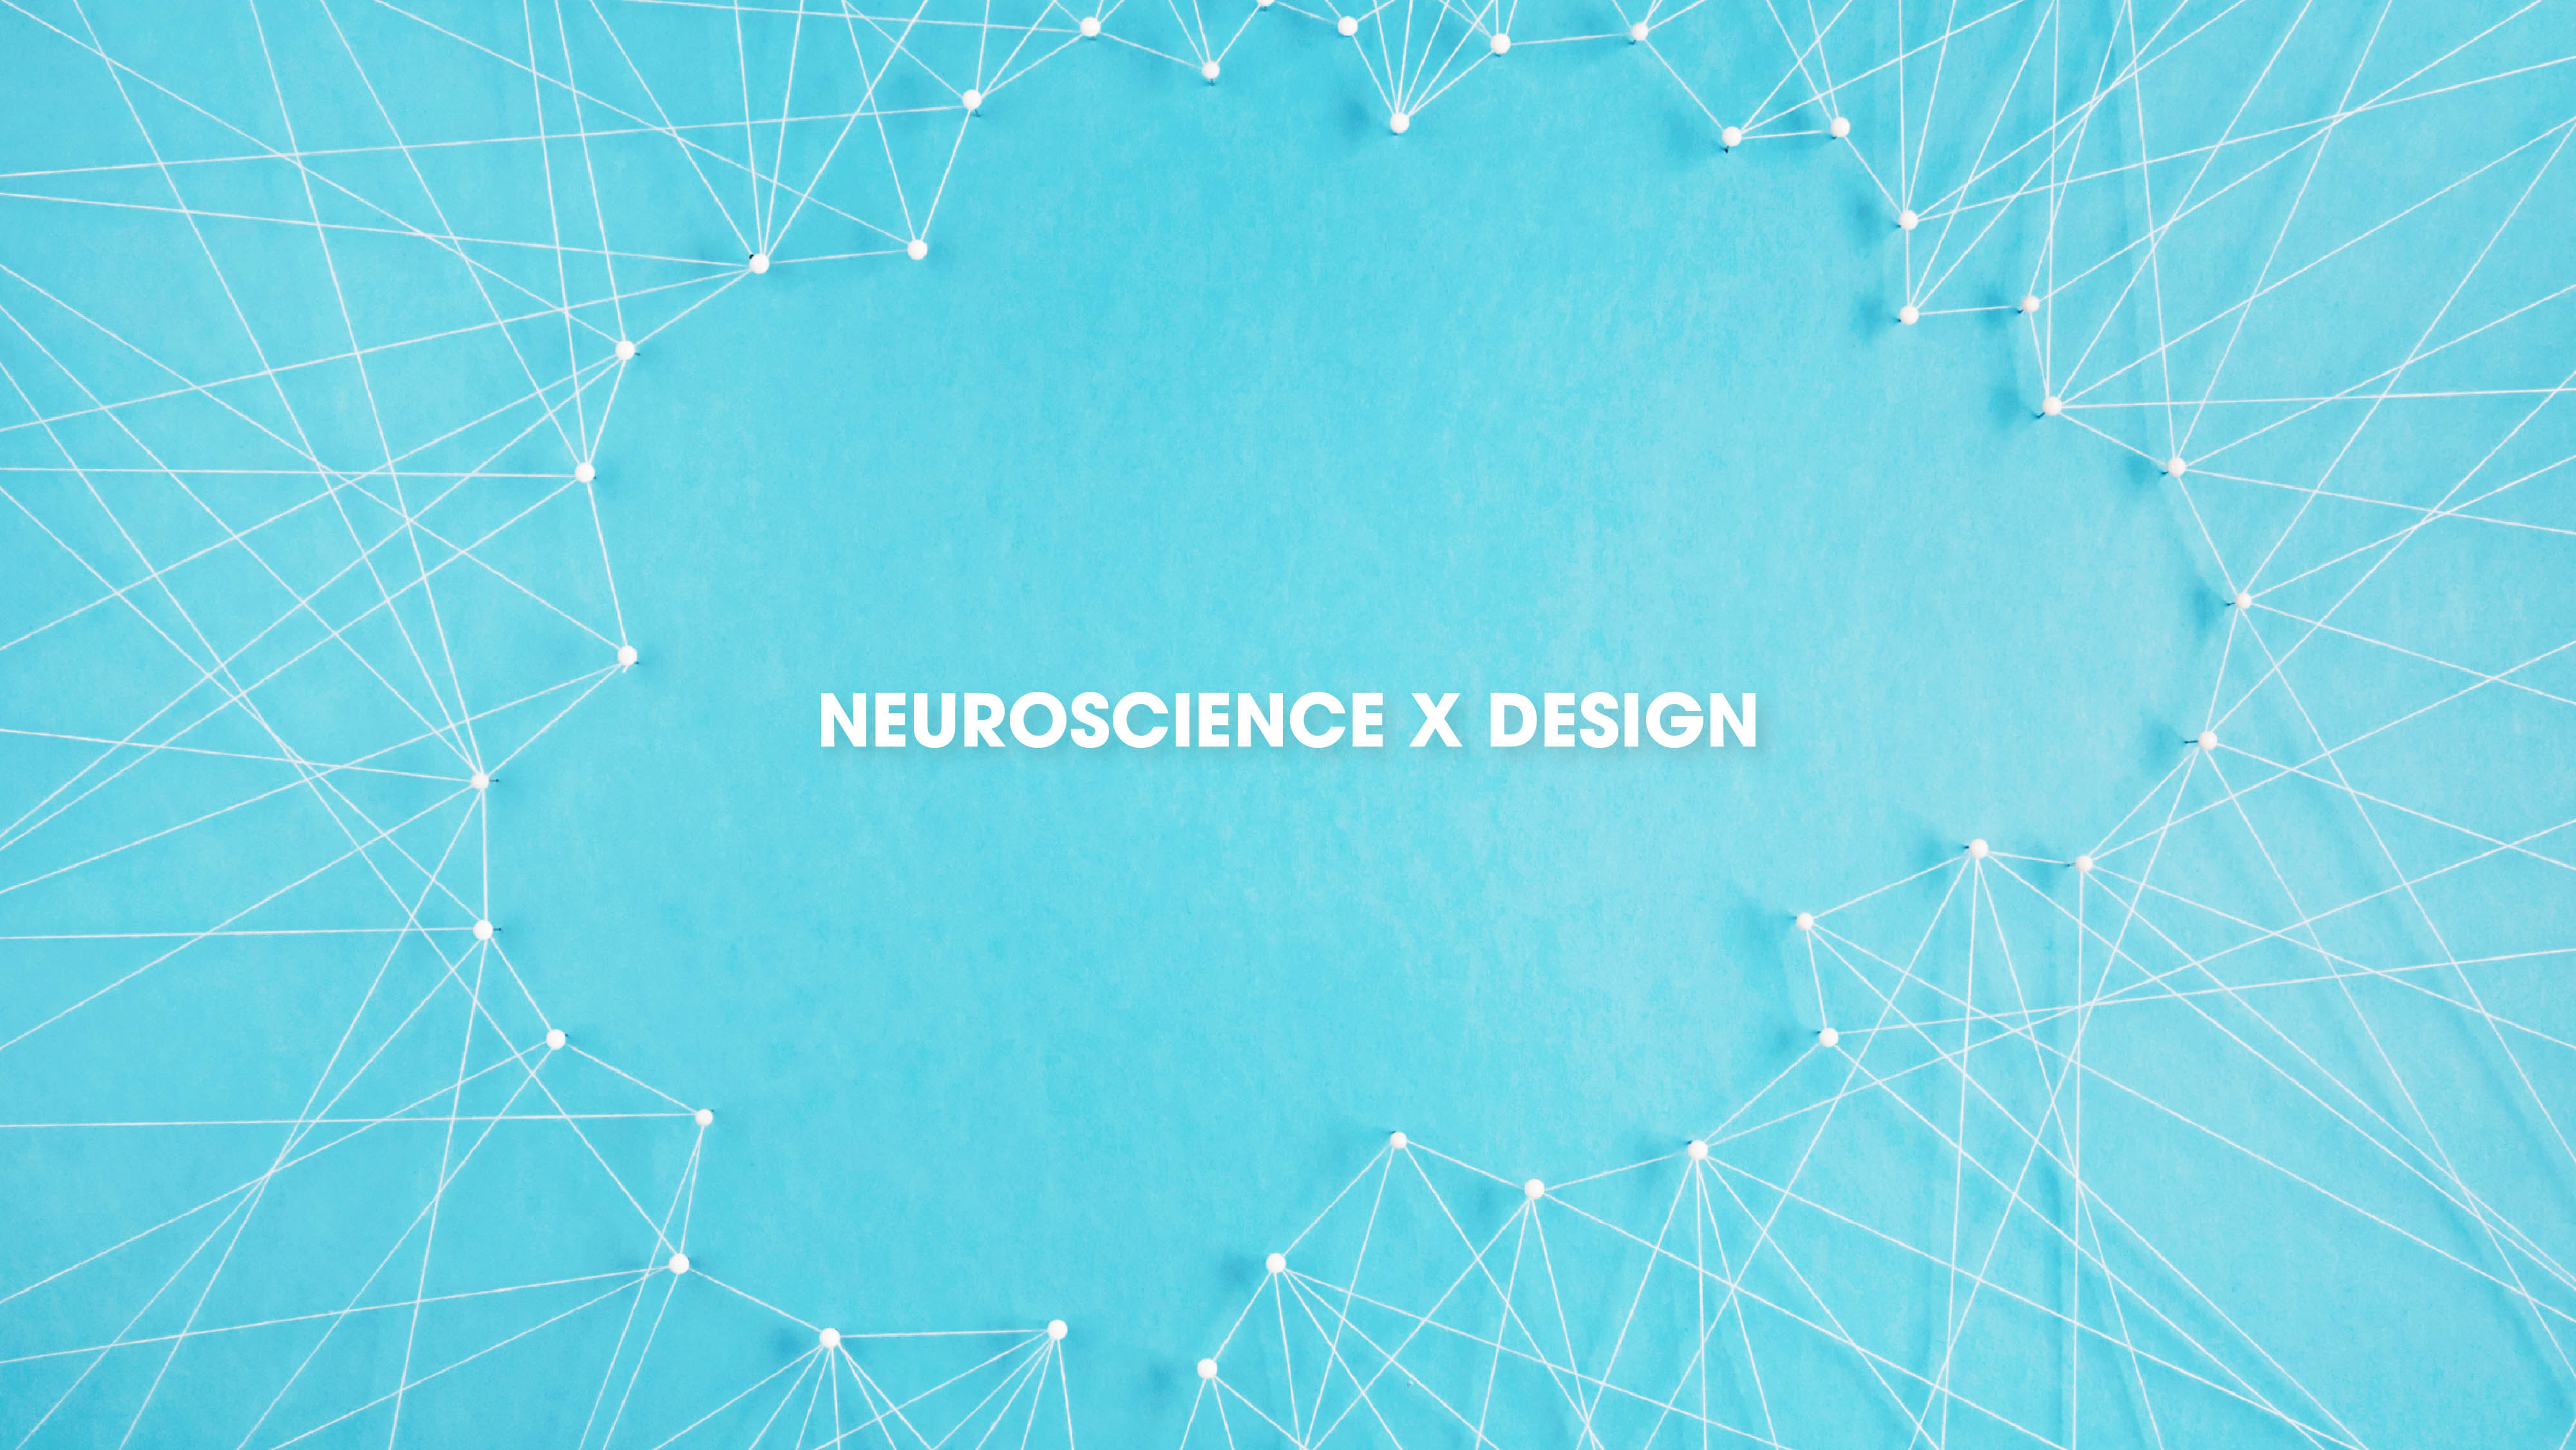 Design psychology- How to combine neuroscience and design to engage your audience